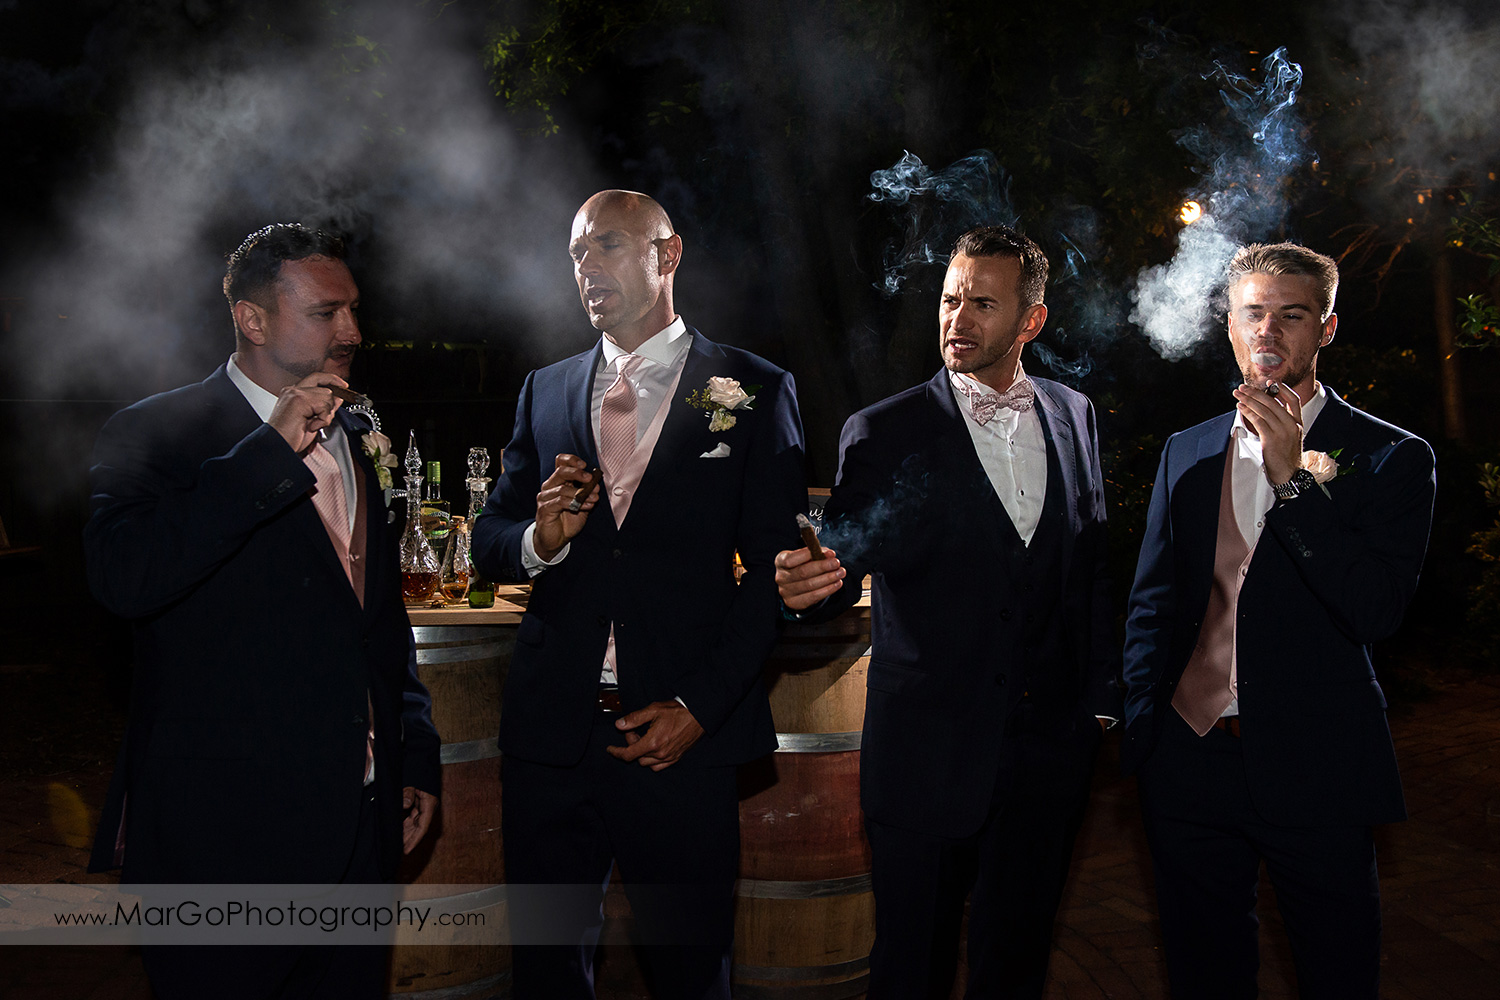 groom and groomsmen smoking cigars during wedding reception at San Pablo Rockefeller Lodge